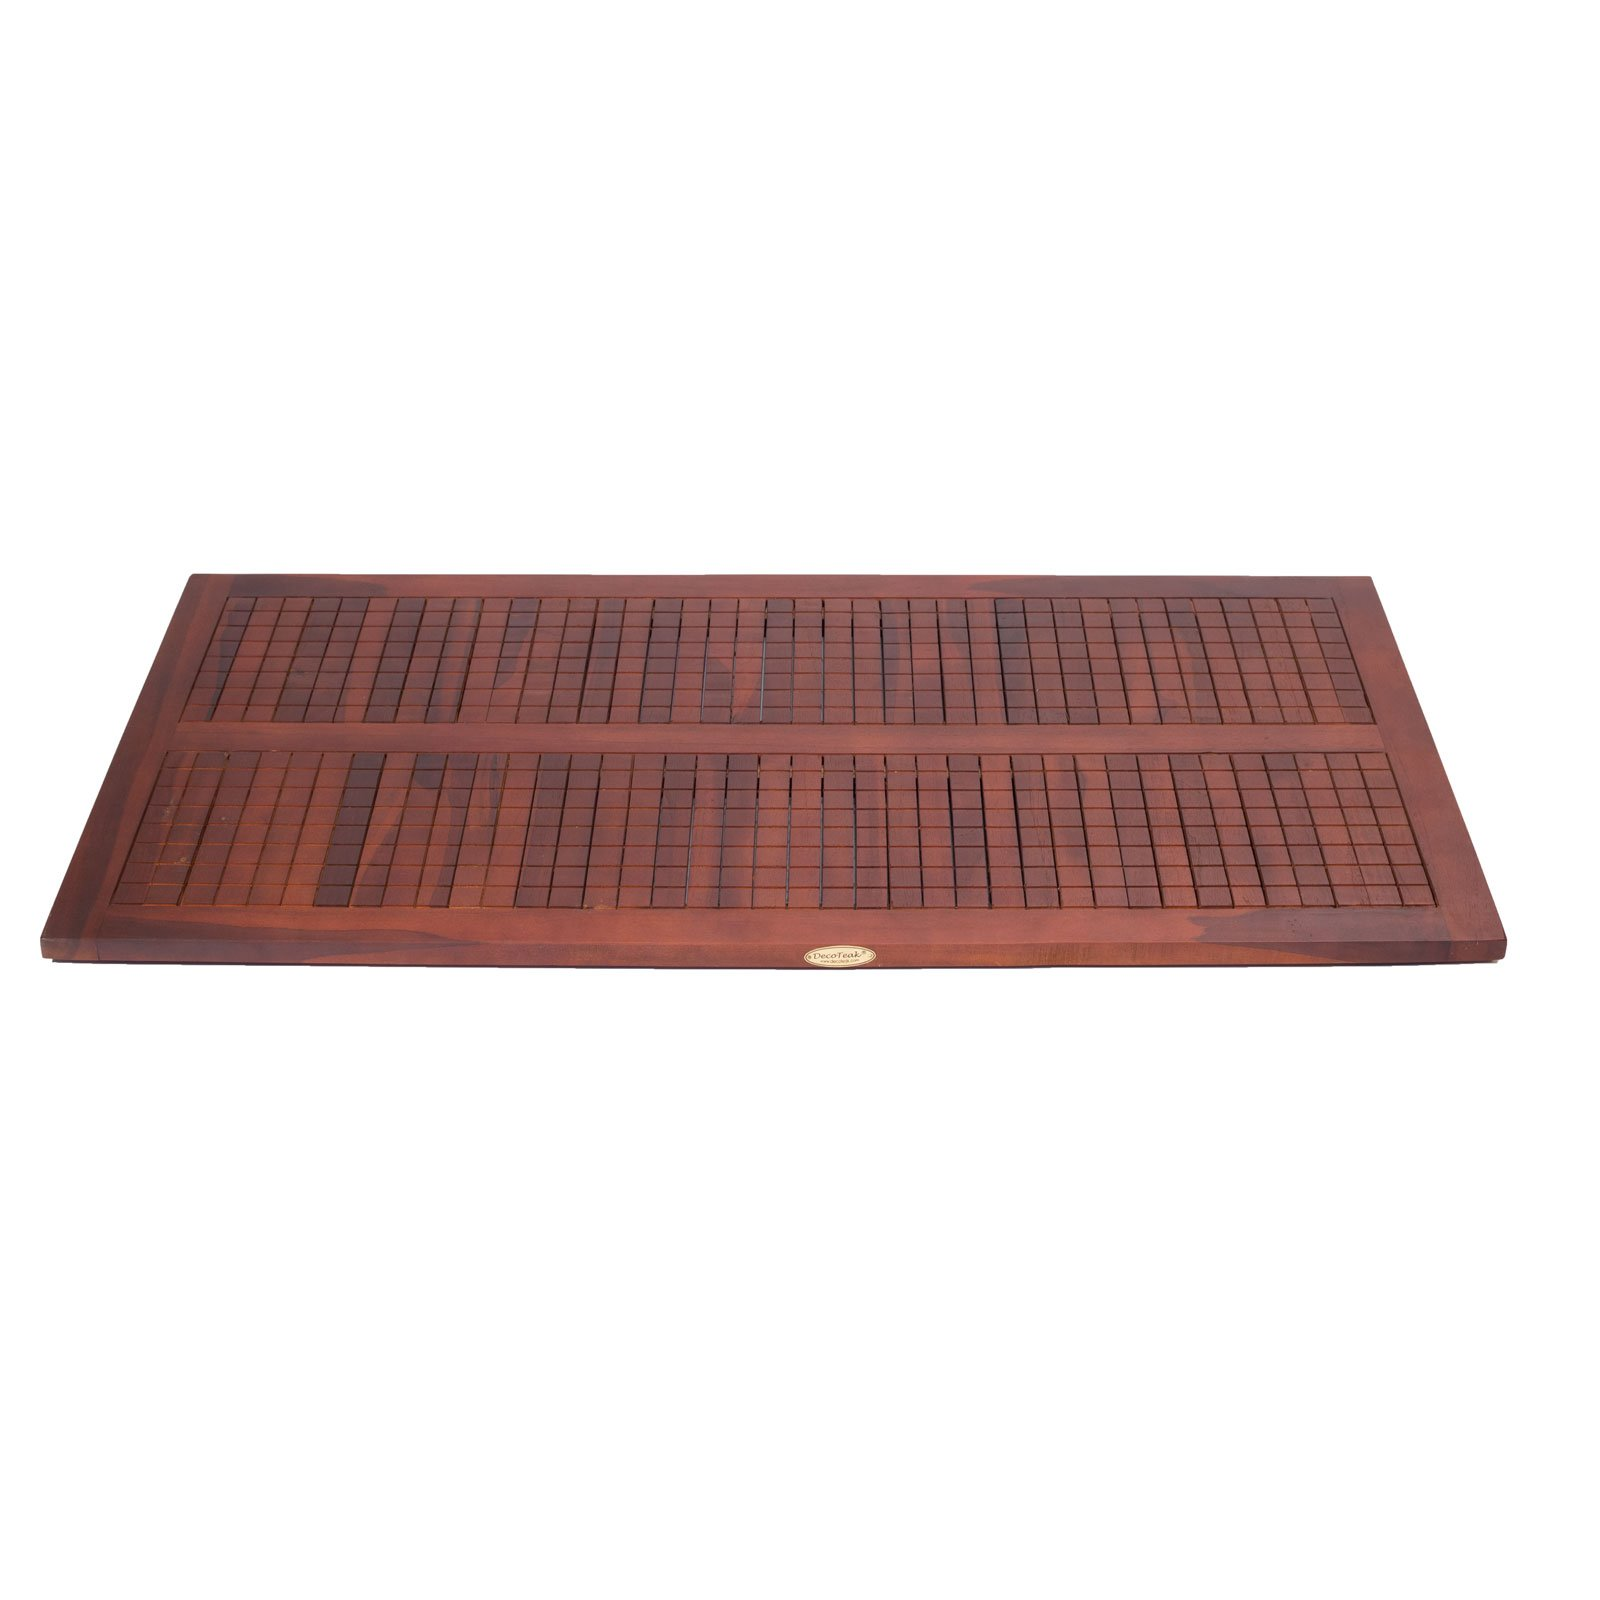 40'' X 20'' Non Slip Teak Shower Floor Bath Bathroom Mat by Decoteak (Image #2)